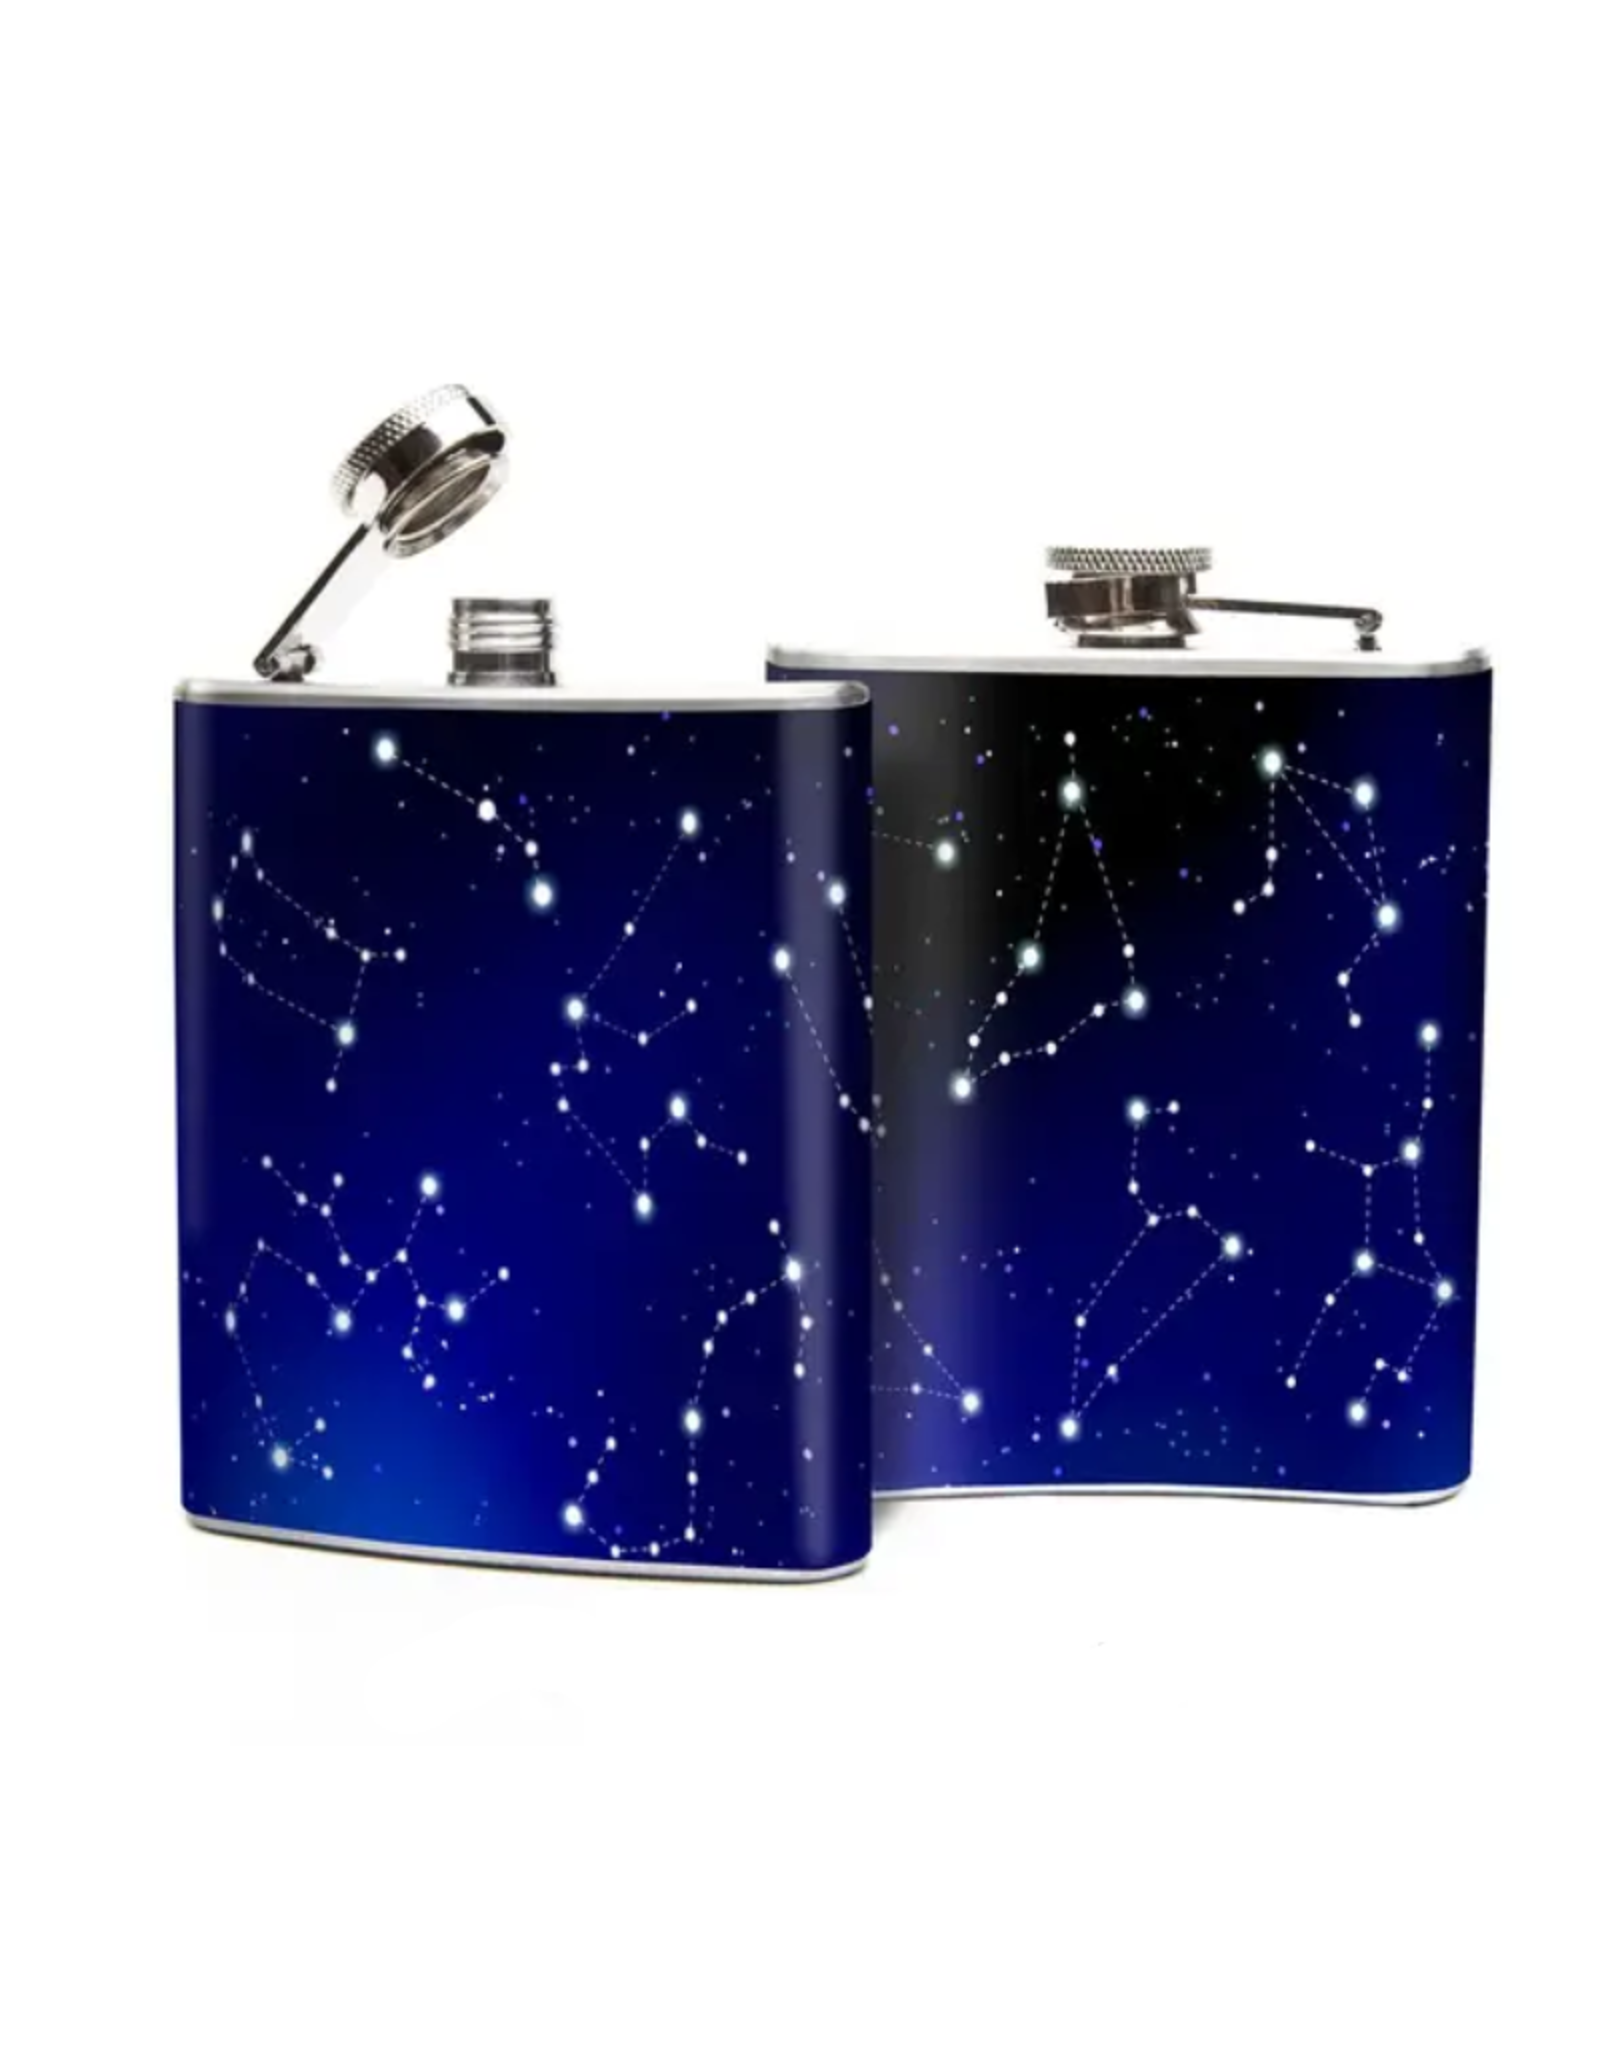 FLASK-ZODIAC CONSTELLATIONS, STAINLESS STEEL